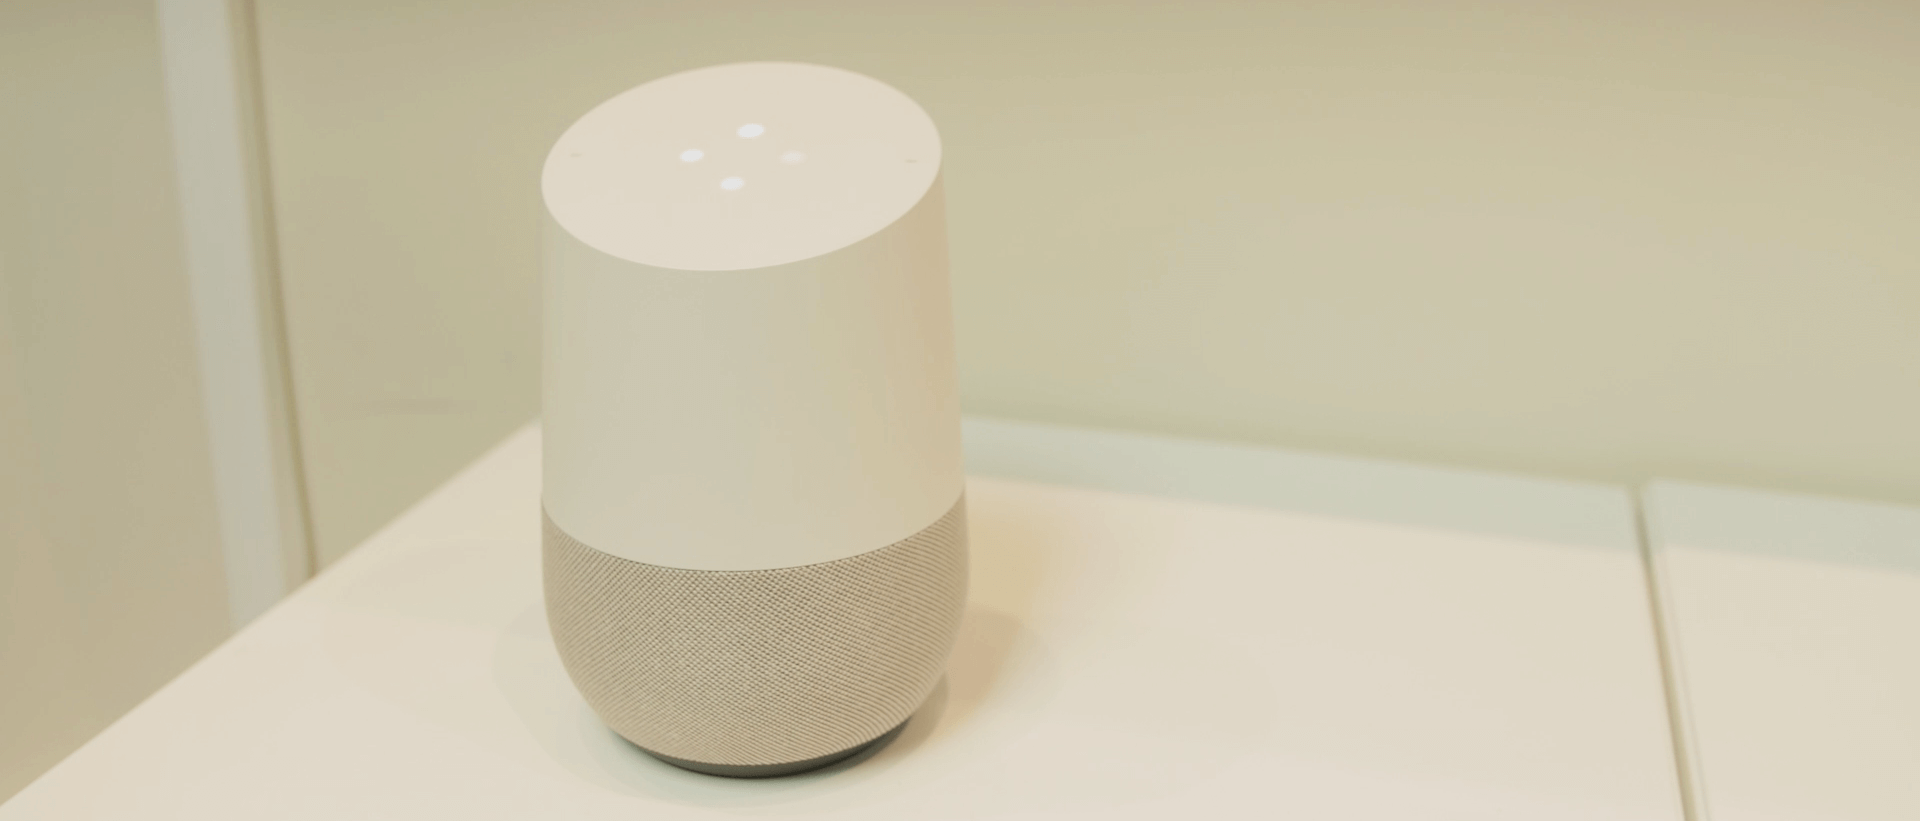 How We Built a Google Home Office Assistant – Connected Lab – Medium